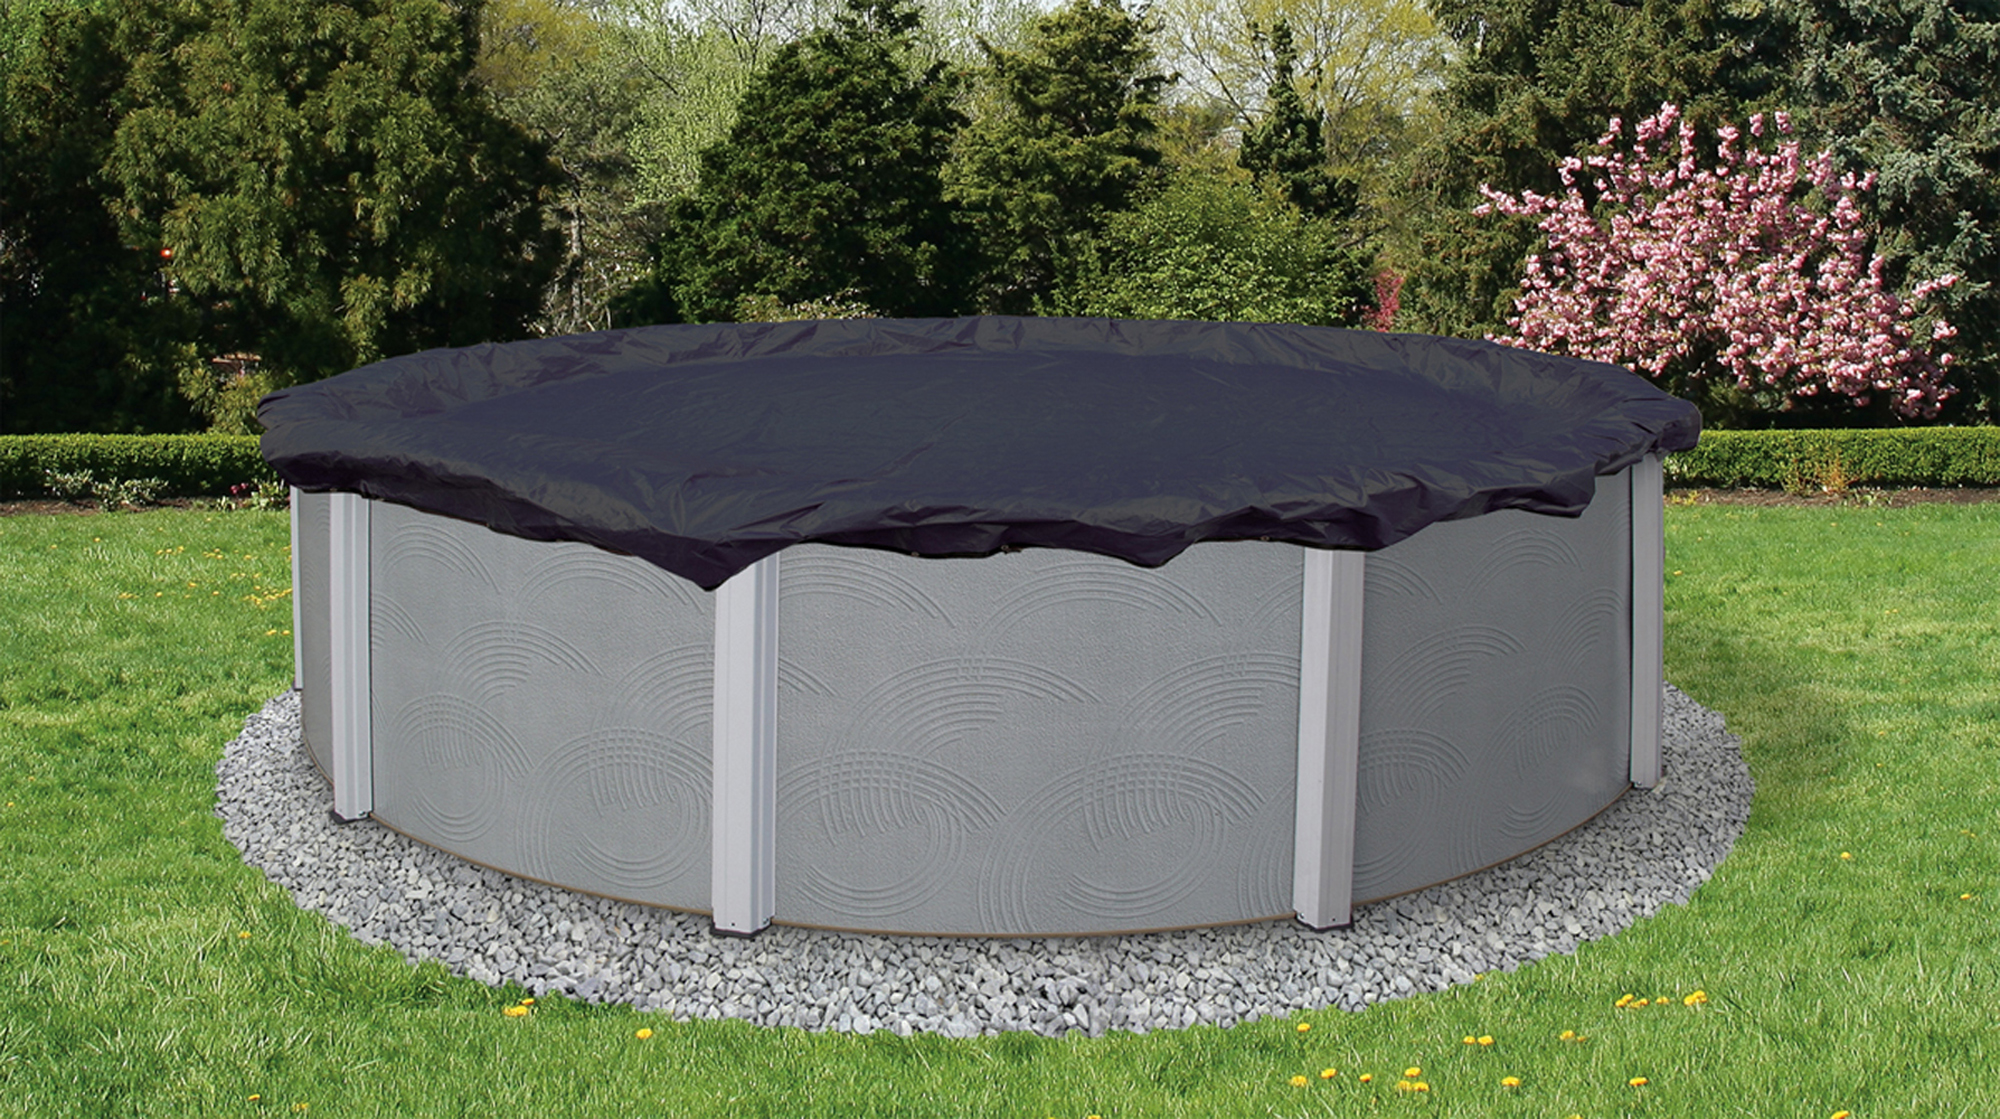 Above Ground Pool Winter Cover Blue Wave Bronze 8 Year 24 Ft Round Above Ground Pool Winter Cover